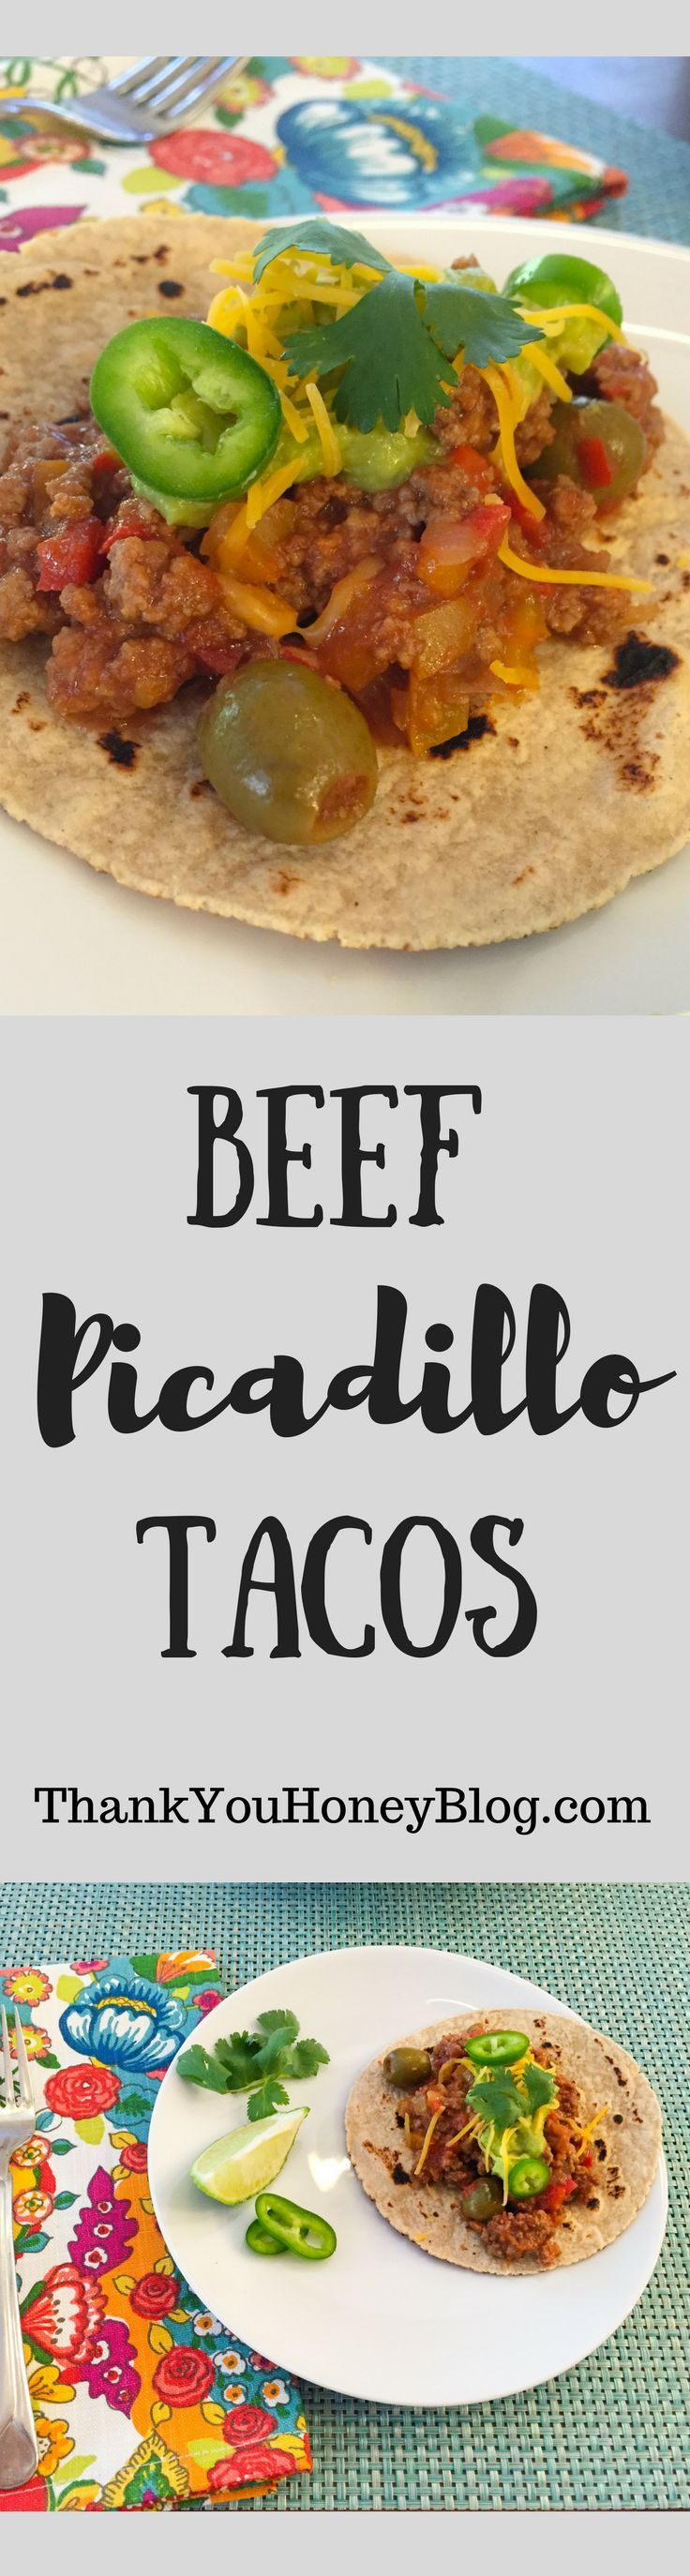 Beef Picadillo Tacos for Taco Tuesday dinner! Click through & PIN IT! Follow Us on Pinterest + Subscribe to ThankYouHoneyBlog(dot)com, Beef Picadillo, Recipe, Cuban- Inspired, Tortillas, Beef Picadillo Tacos, Supper, Main Dish, Tacos, Easy Recipe, Simple